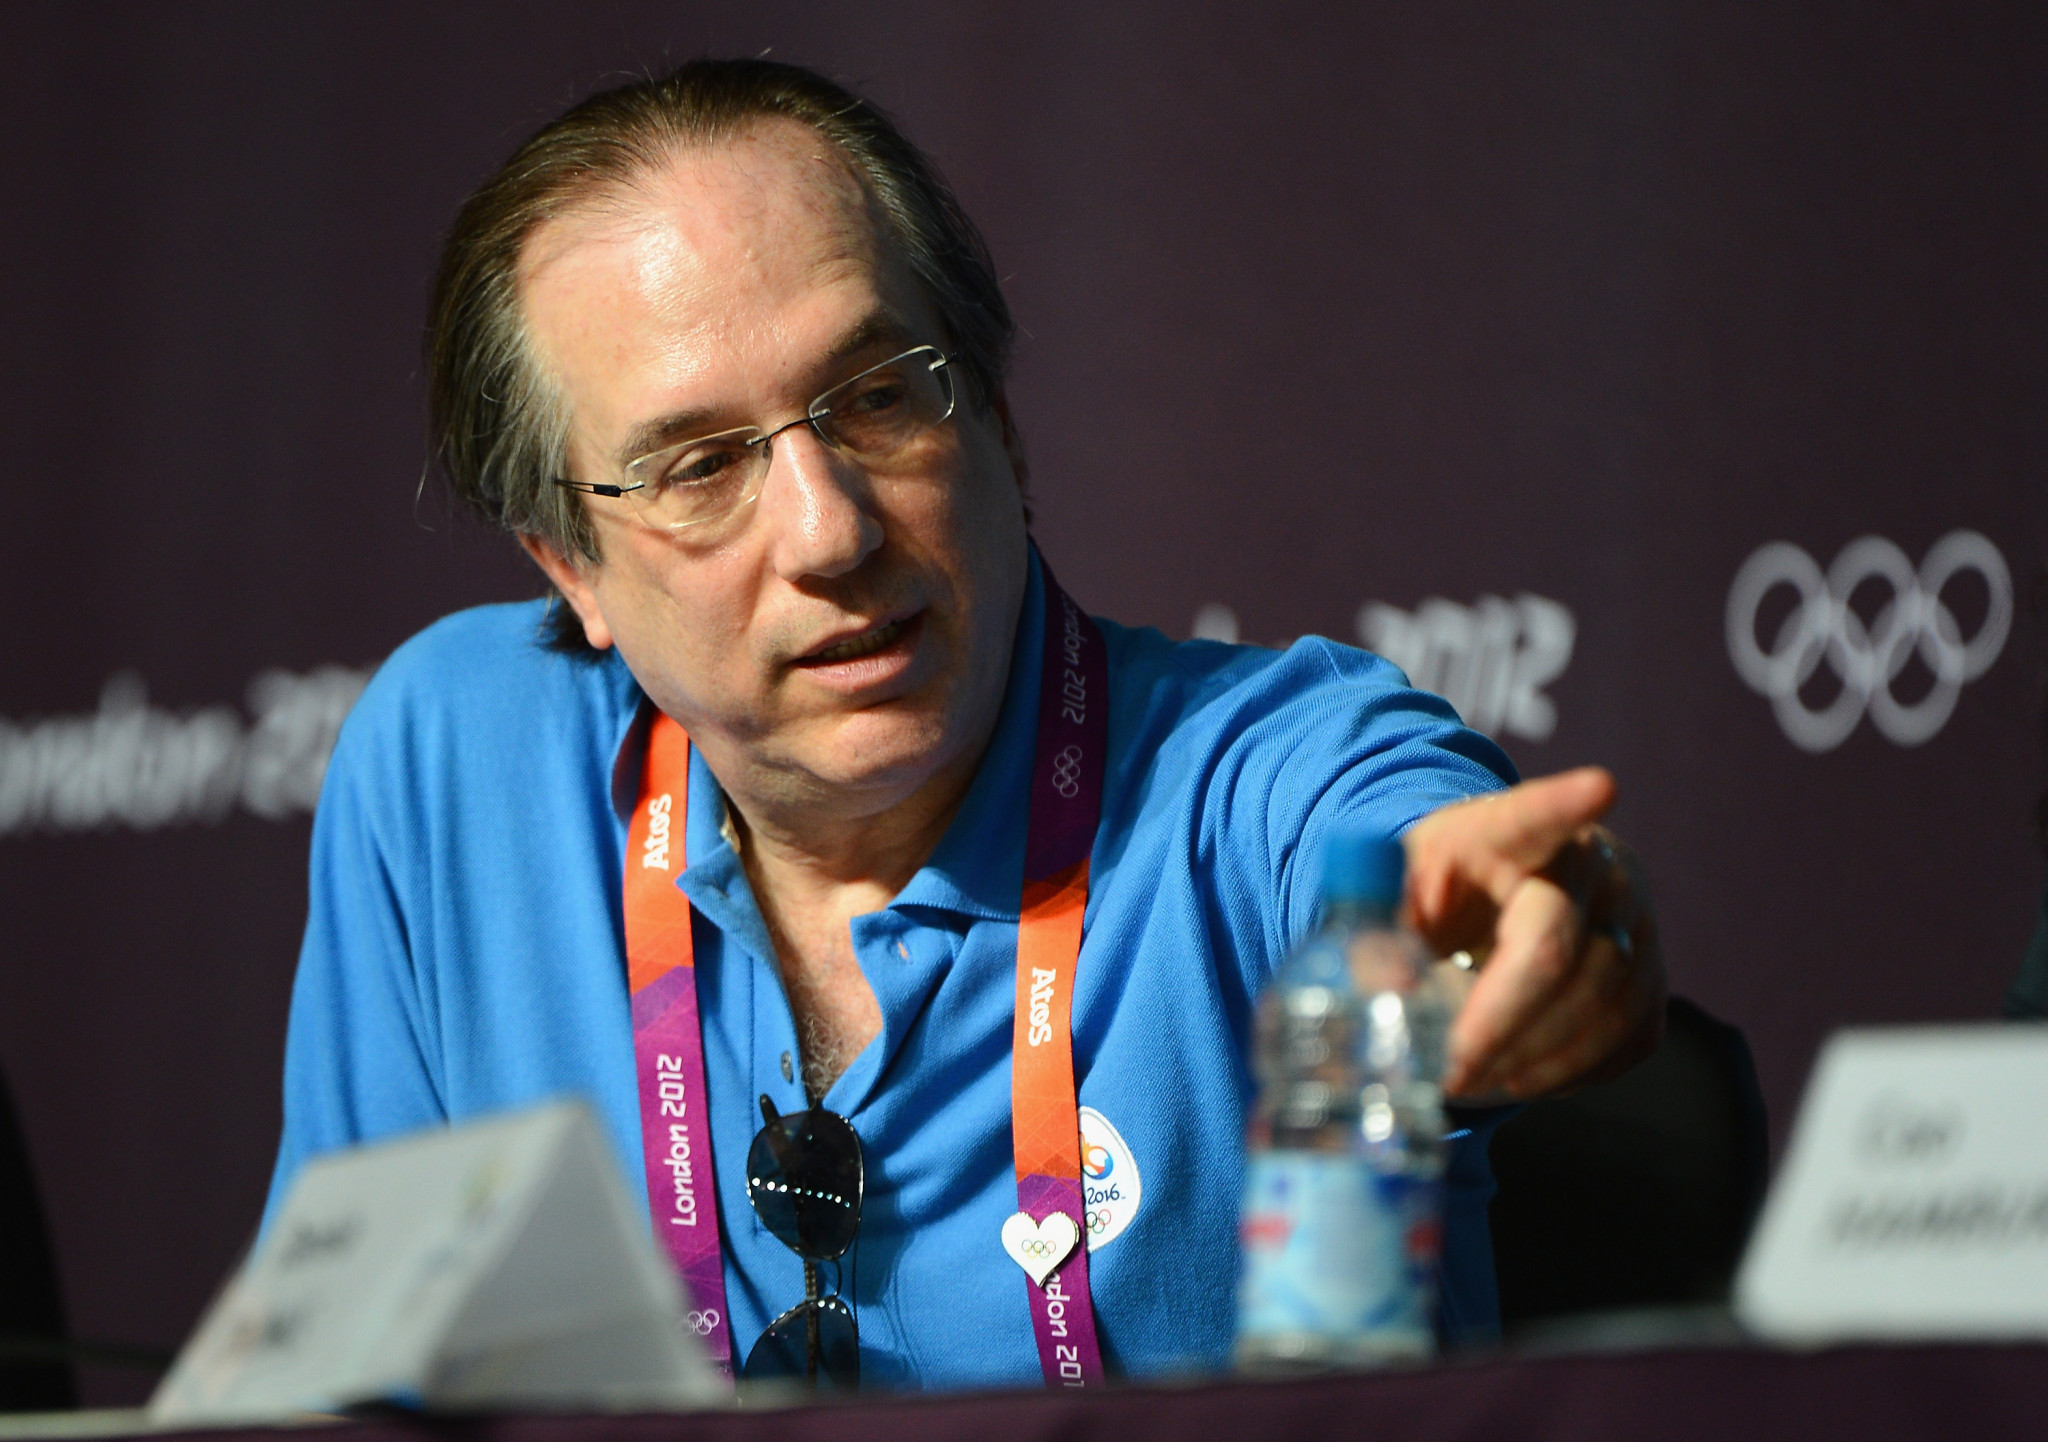 Rio 2016 President Carlos Nuzman and right-hand man Leonardo Gryner met with a businessman at the centre of the vote-buying scandal less than a month before the Brazilian city was awarded the 2016 Olympic and Paralympic Games ©Getty Images